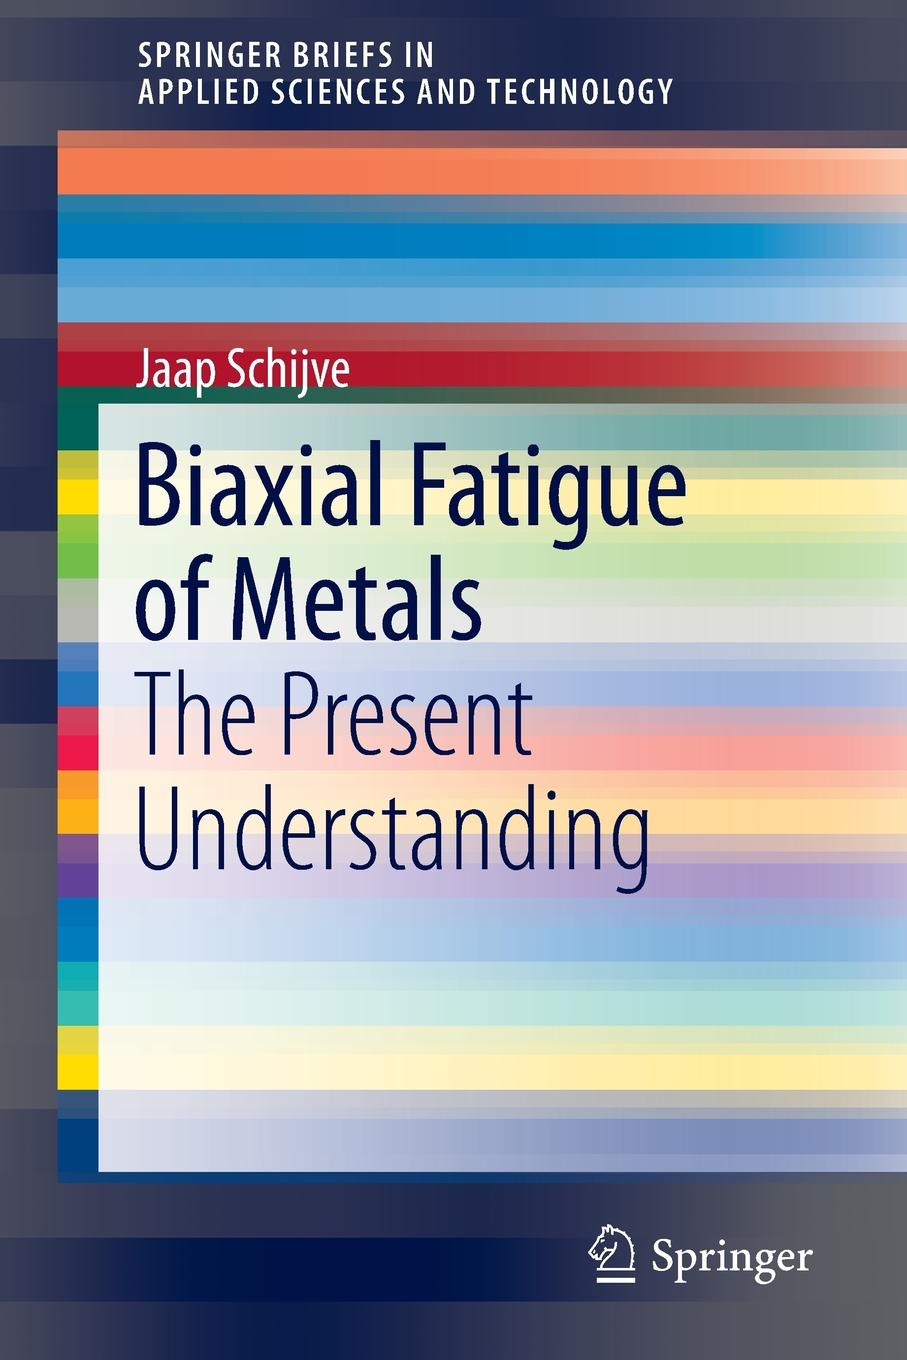 Jaap Schijve Biaxial Fatigue of Metals. The Present Understanding [[sa]used midori cpp 35 500 europe biaxial conductive plastic potentiometer angle sensor 1pcs